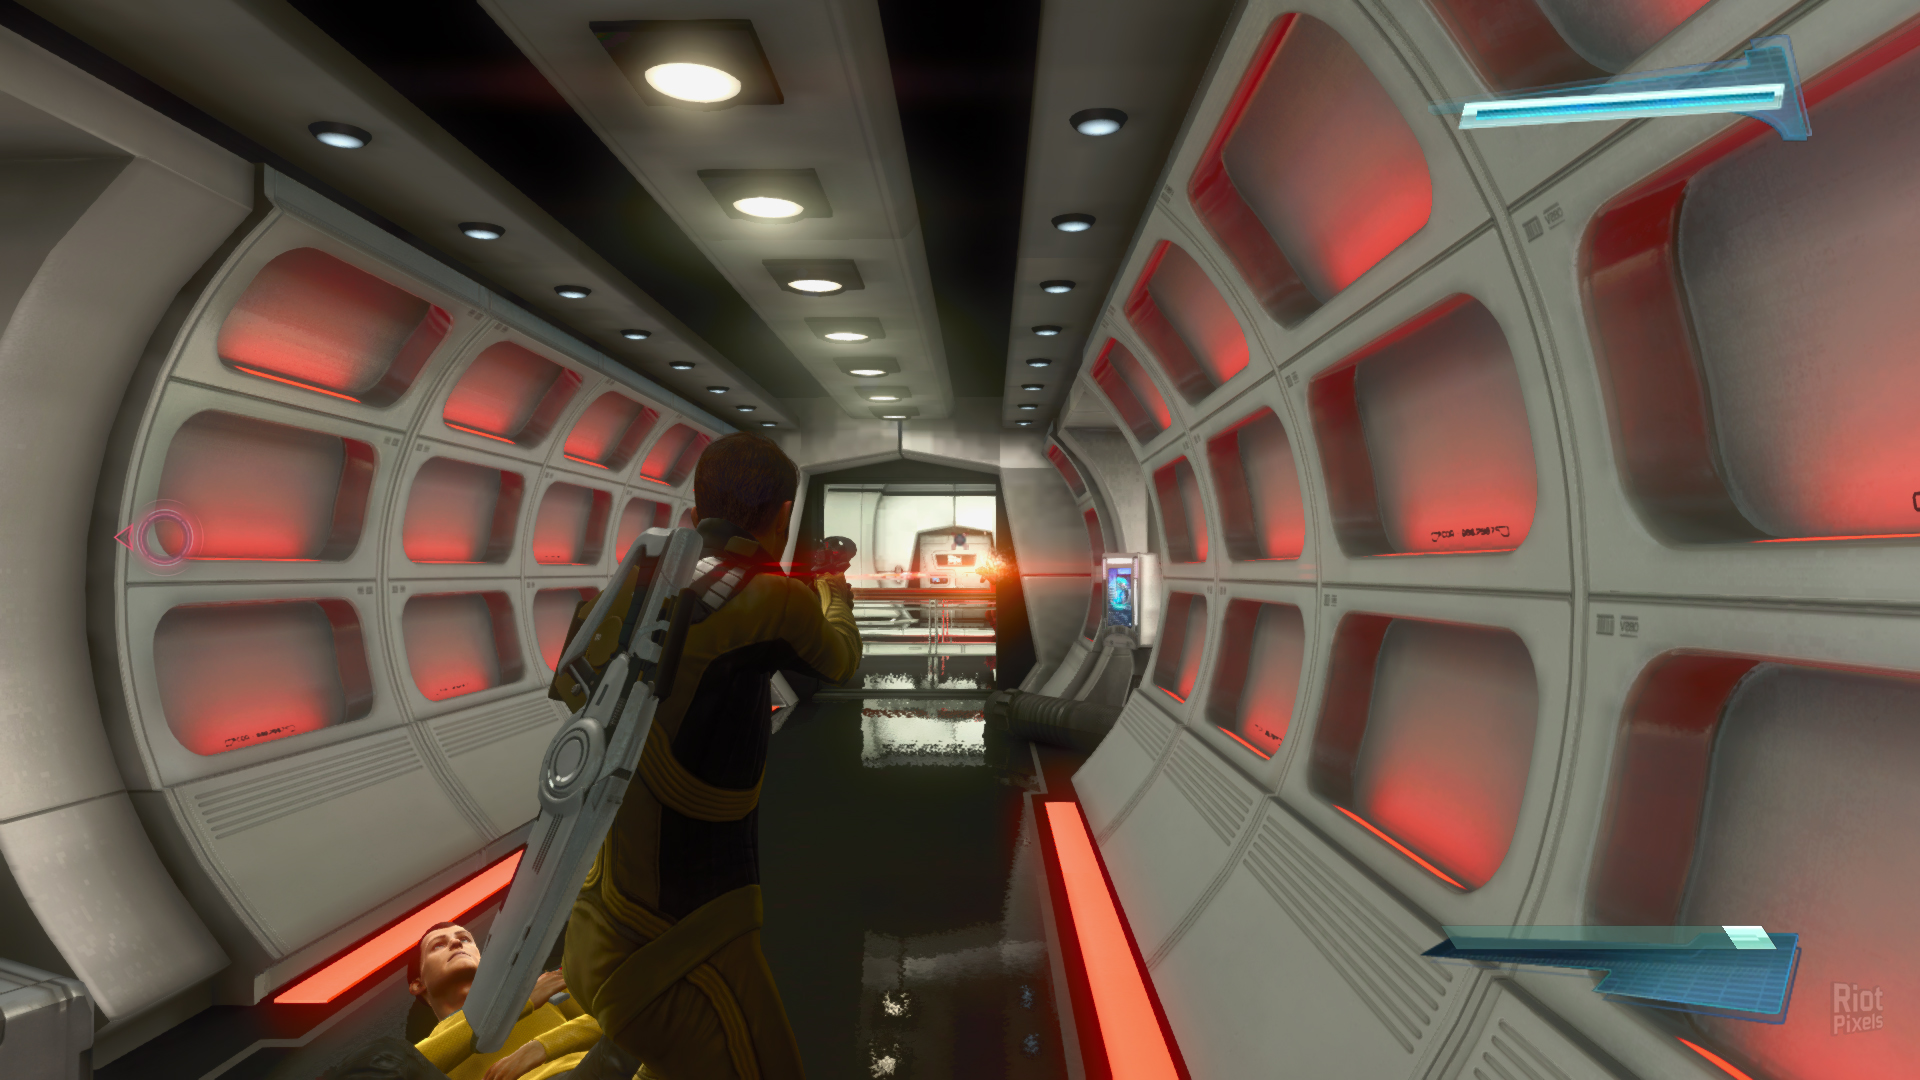 Star Trek:The Video Game (2013) +DLC Elite Officer Pack